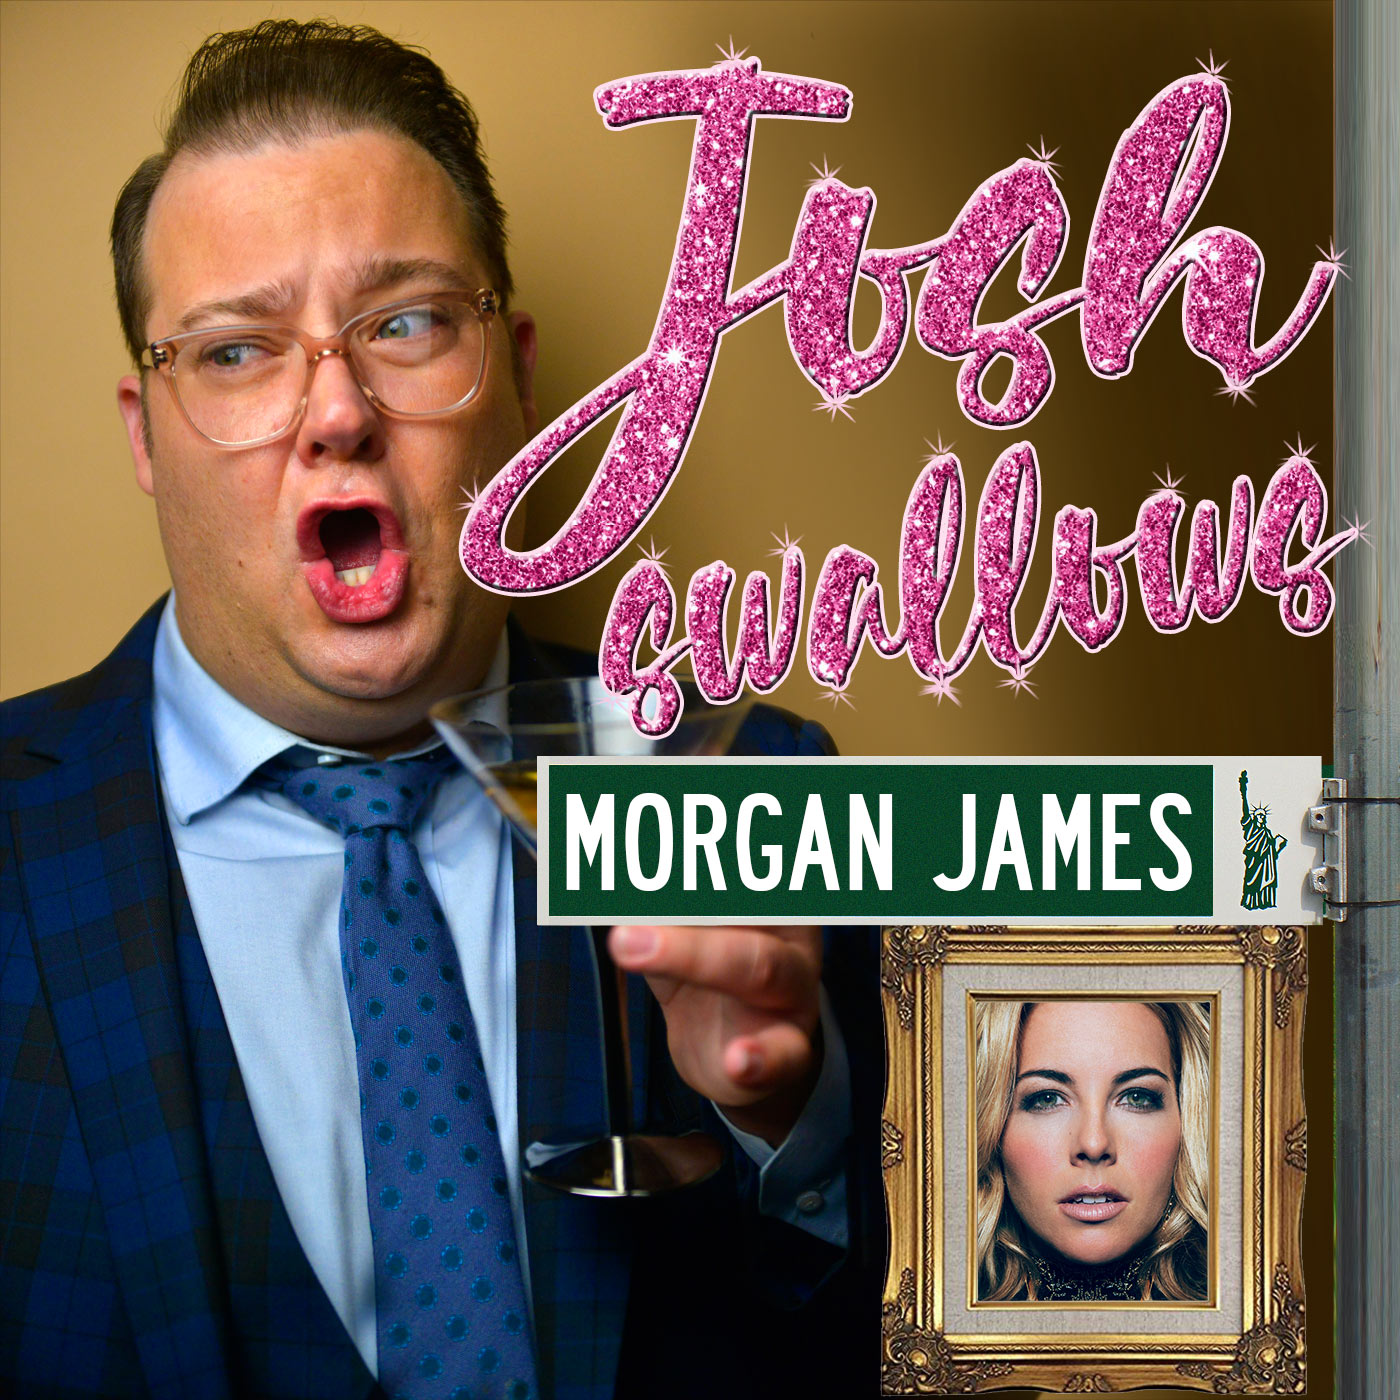 Ep14 - Morgan James, tears before bedtime